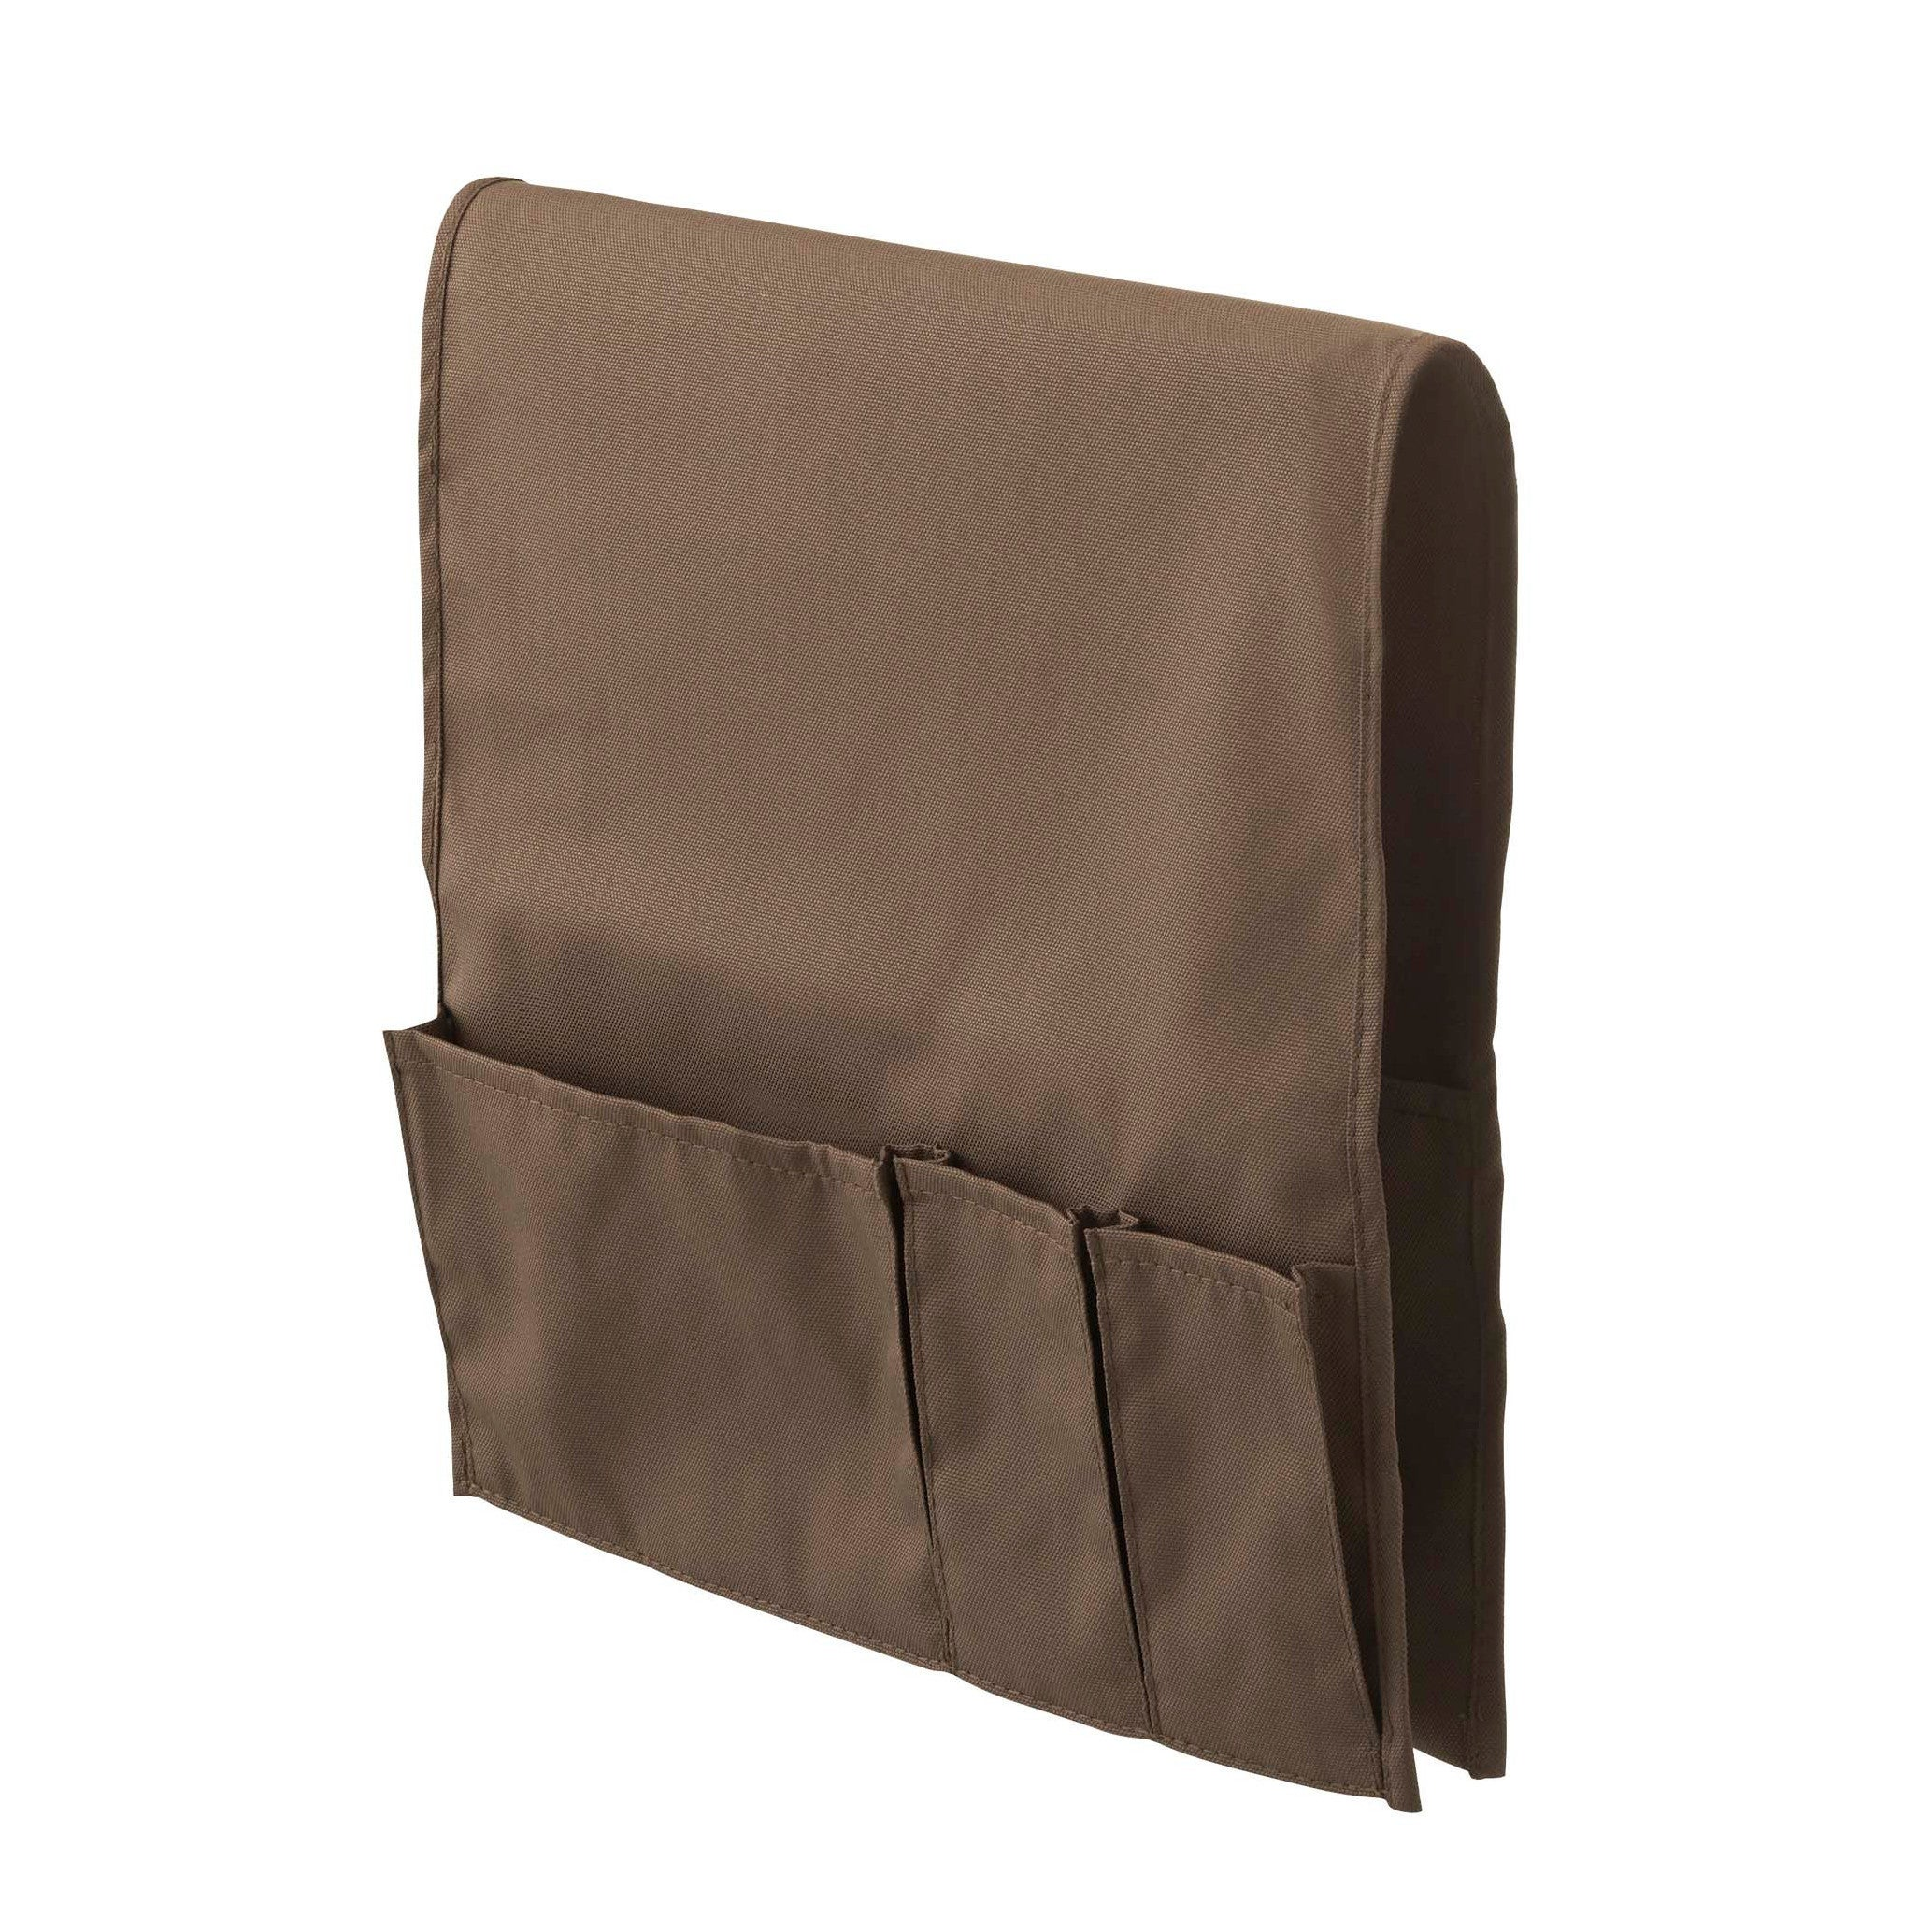 USA Smart Ivory/ Brown Couch Pocket by Yamazaki Home (Bro...